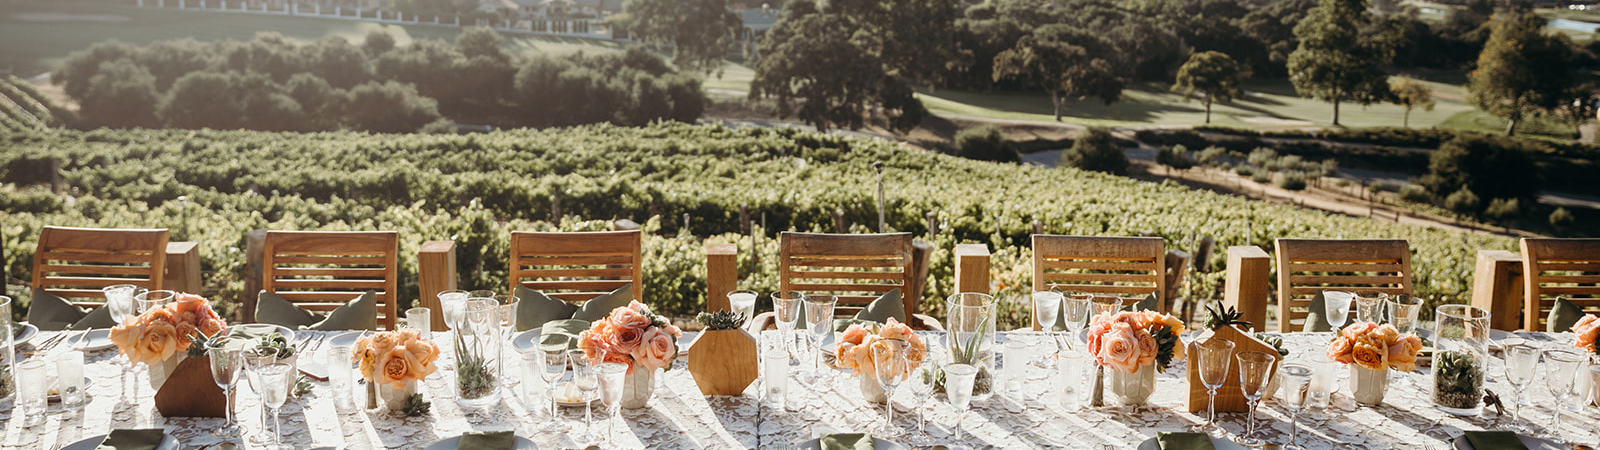 Carmel Valley Ranch_Weddings_Events_Harvest Landing_048_Katie Edwards